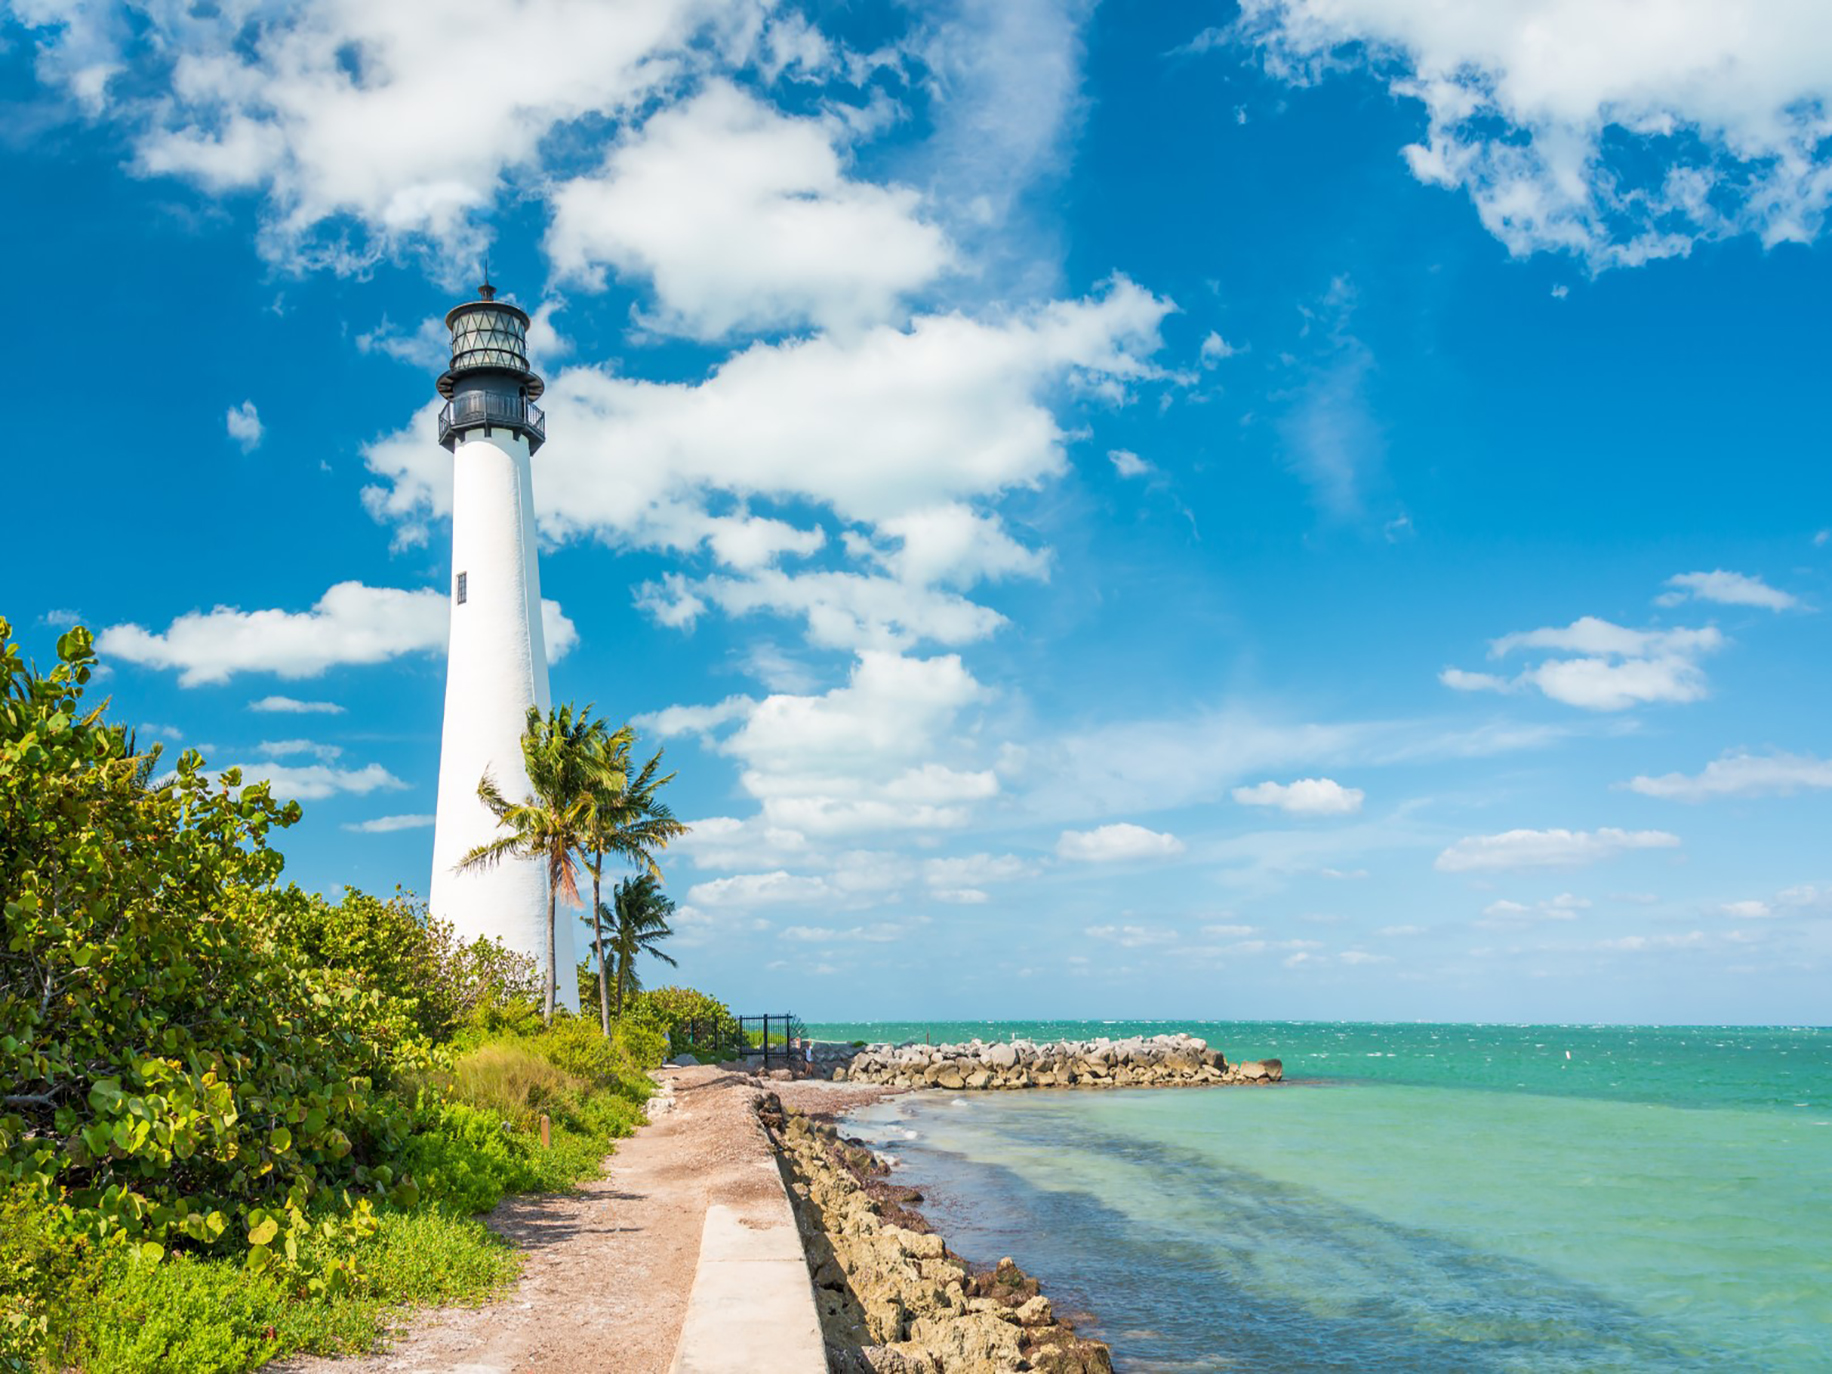 Famous lighthouse at Key Biscayne, Miami